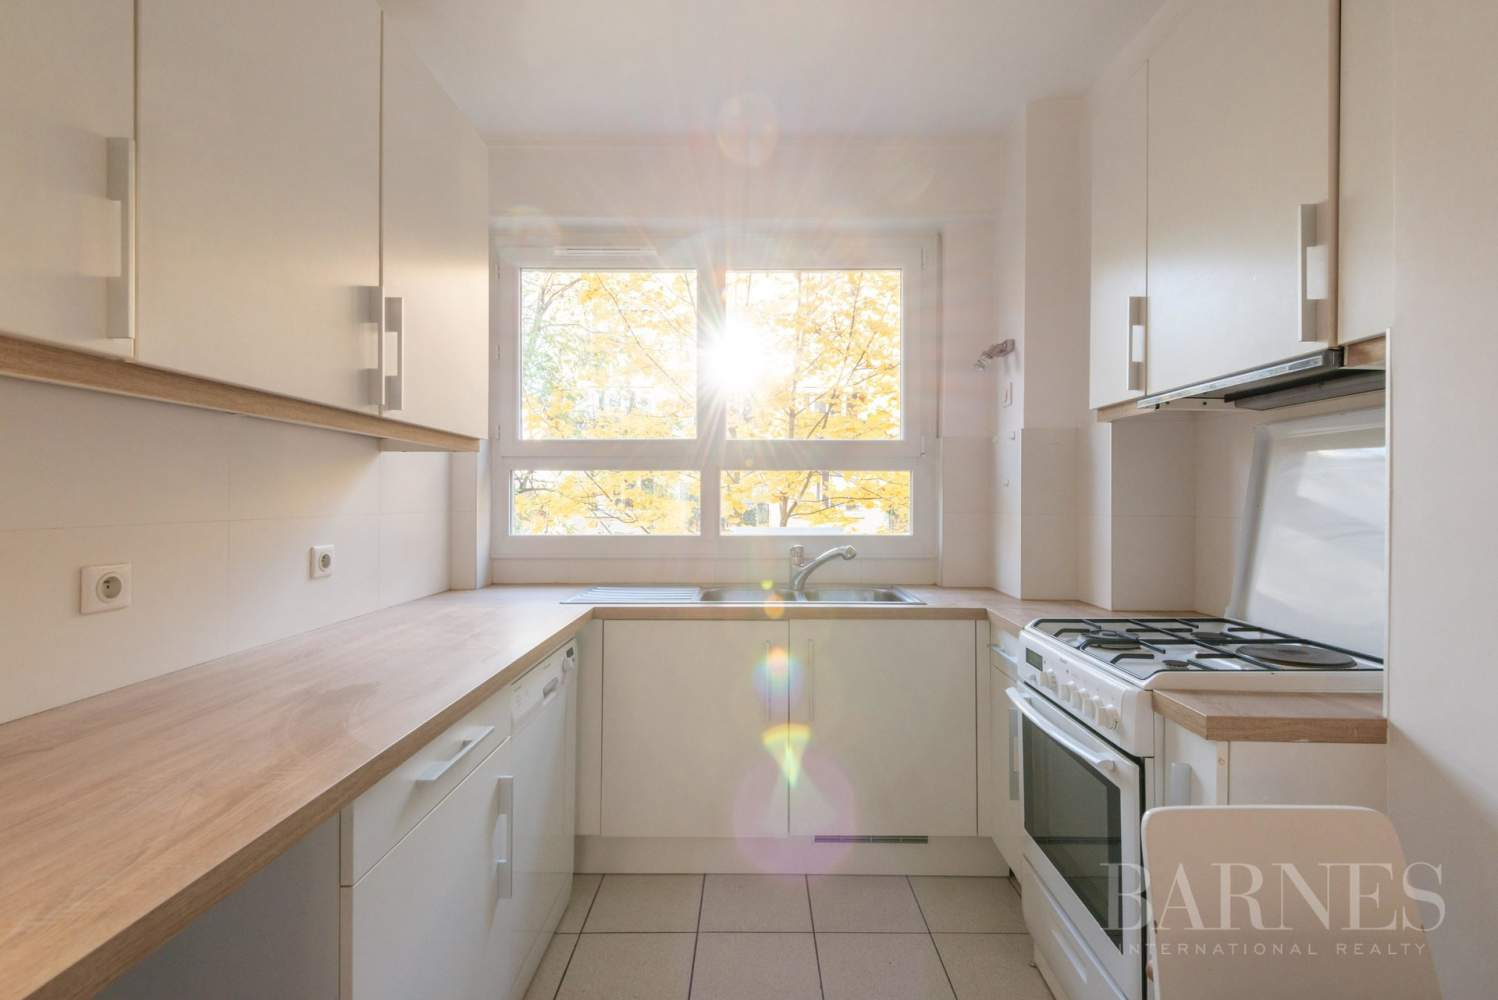 NEUILLY CHEZY APPARTEMENT 3 CHAMBRES VIDE PARKING BALCON picture 4